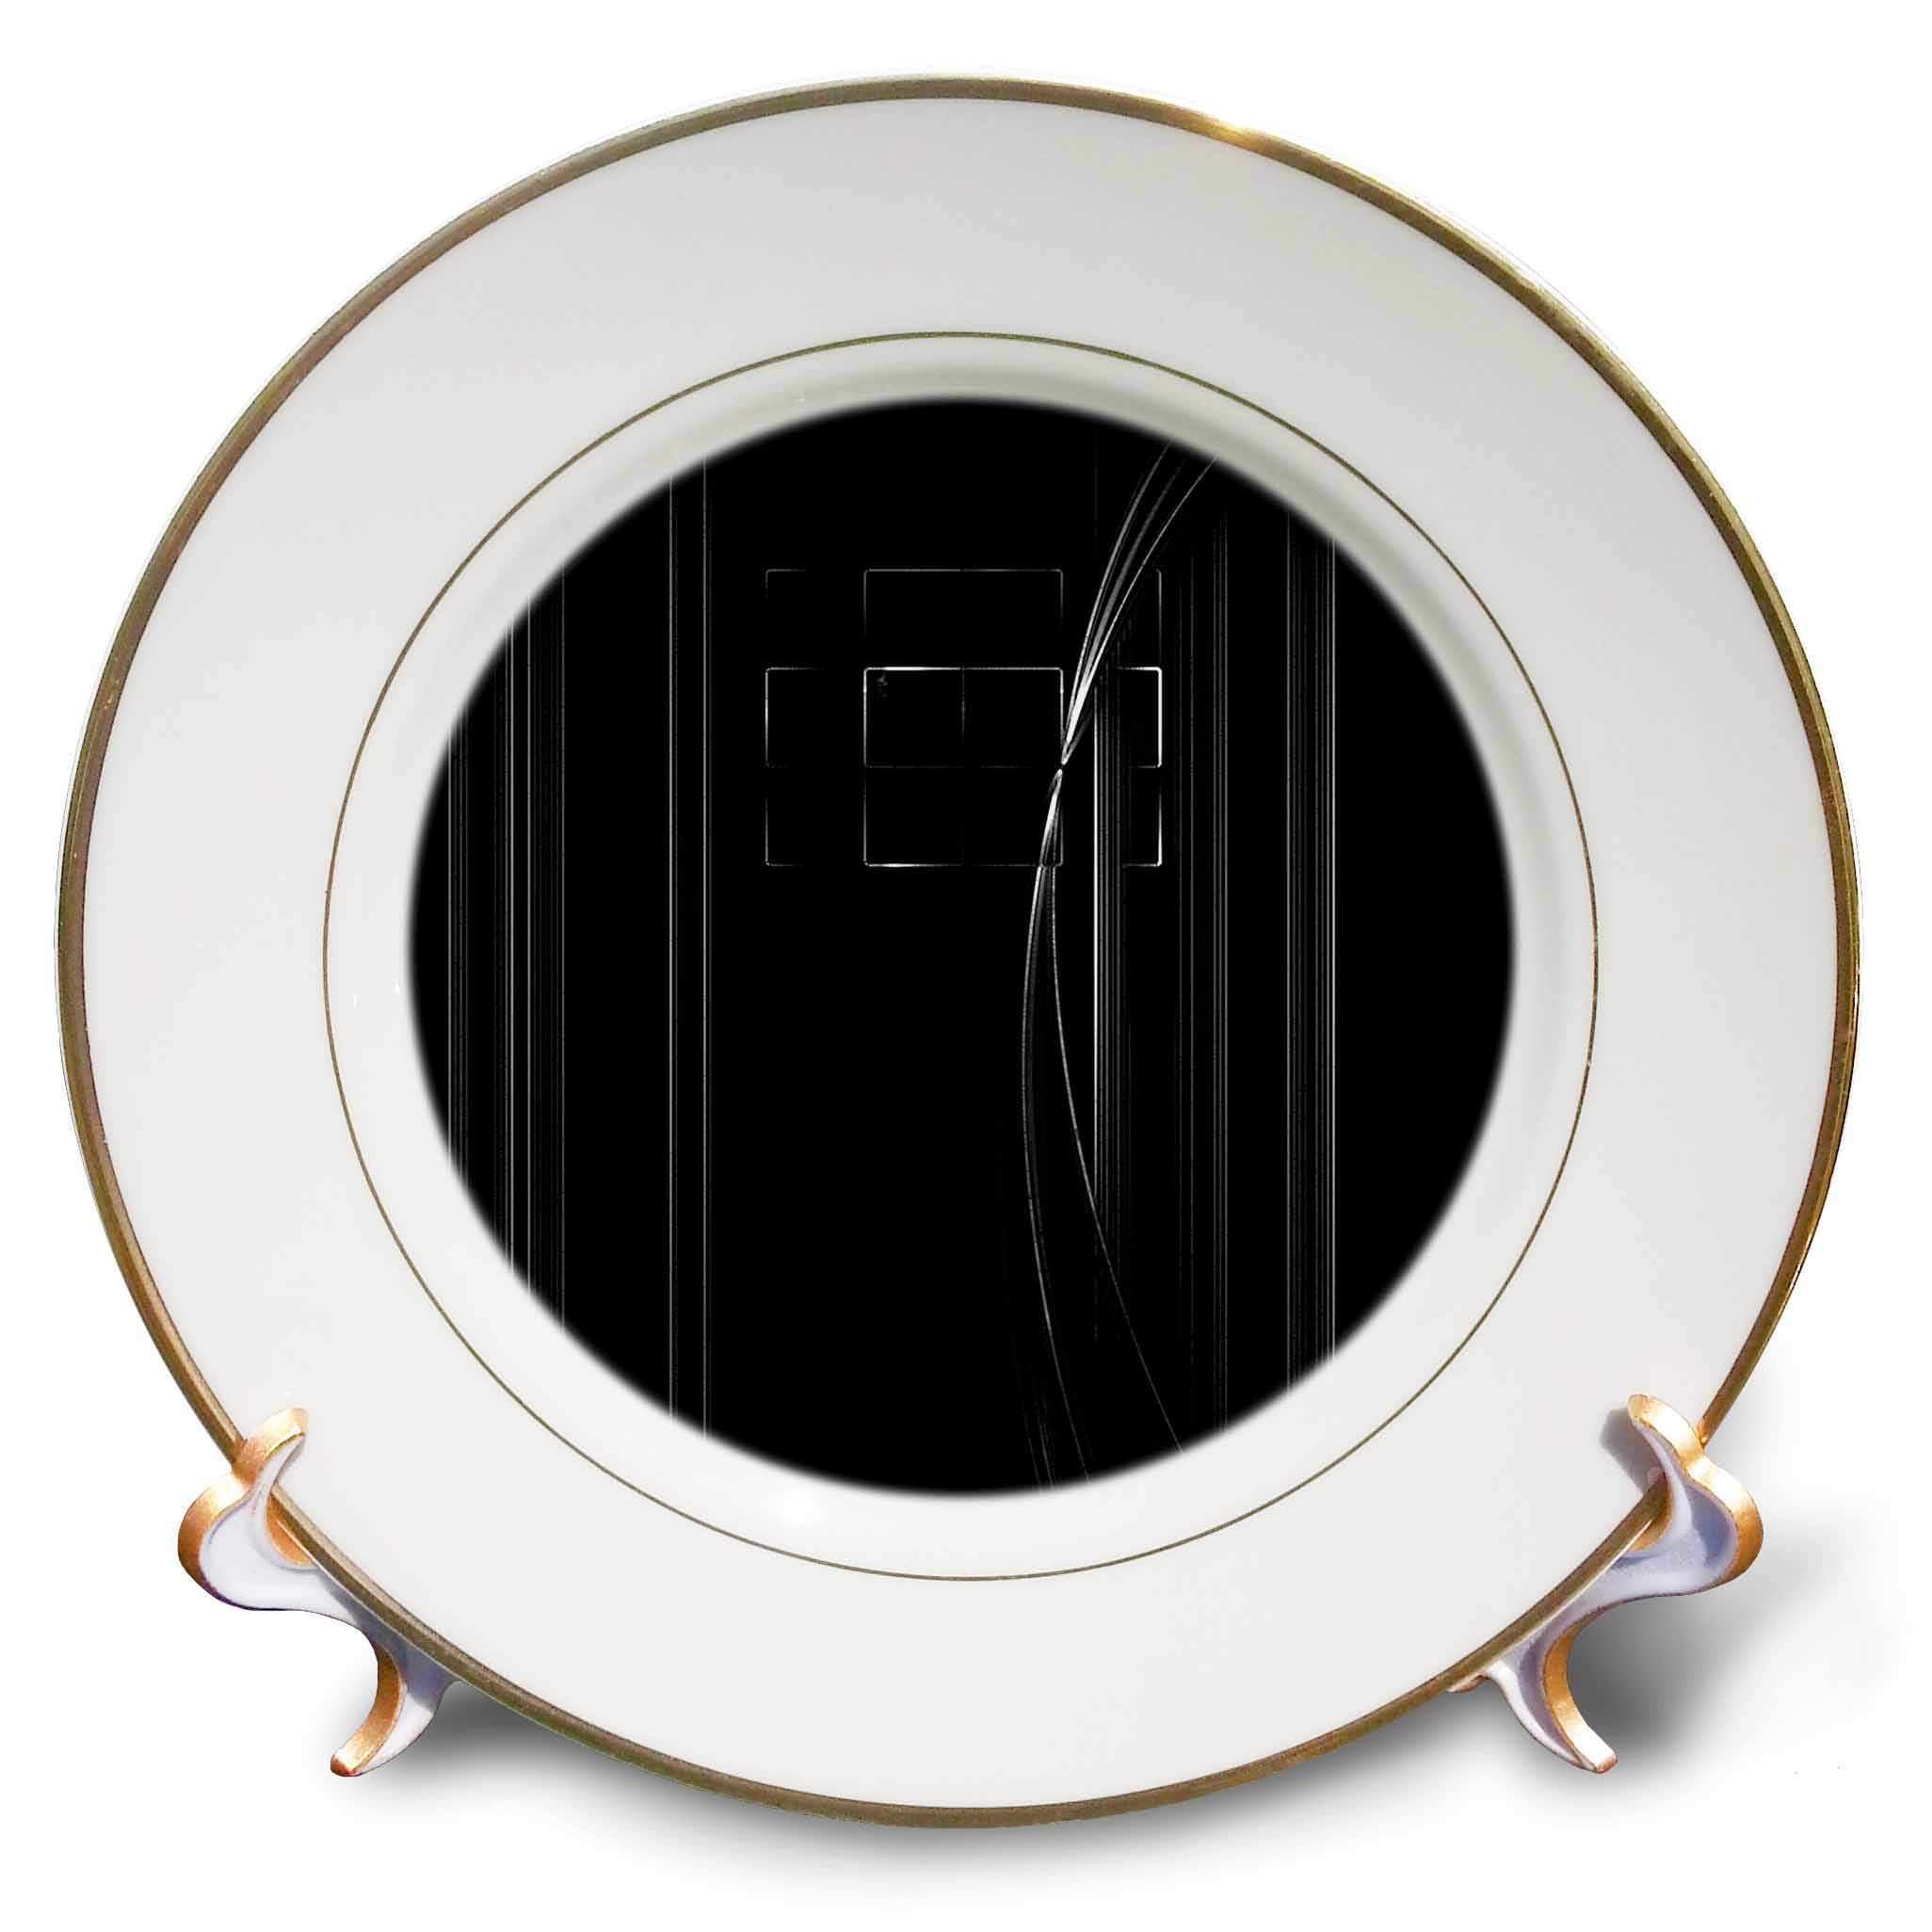 3dRose Digital Art by Brandi - Finding Light - Abstract of light coming through a window - 8 inch Porcelain Plate (cp_289205_1)